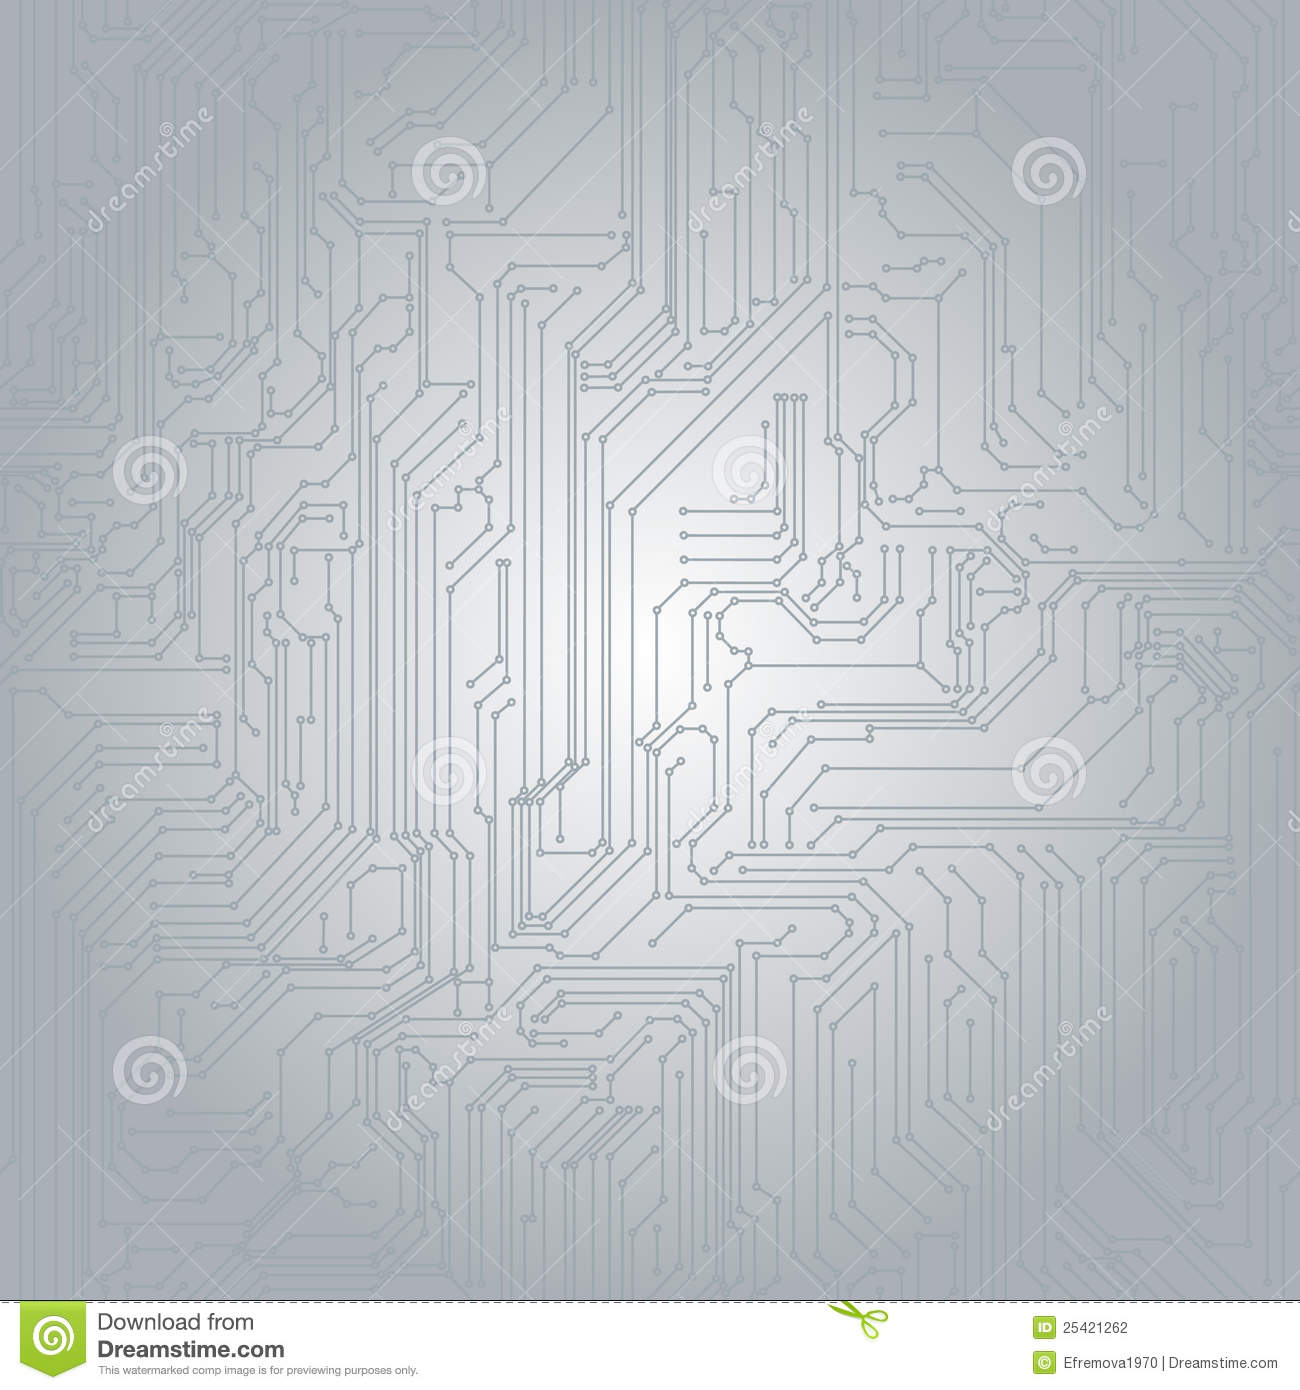 Seamless Background In The Form Of Printed Circuit Stock Vector ...